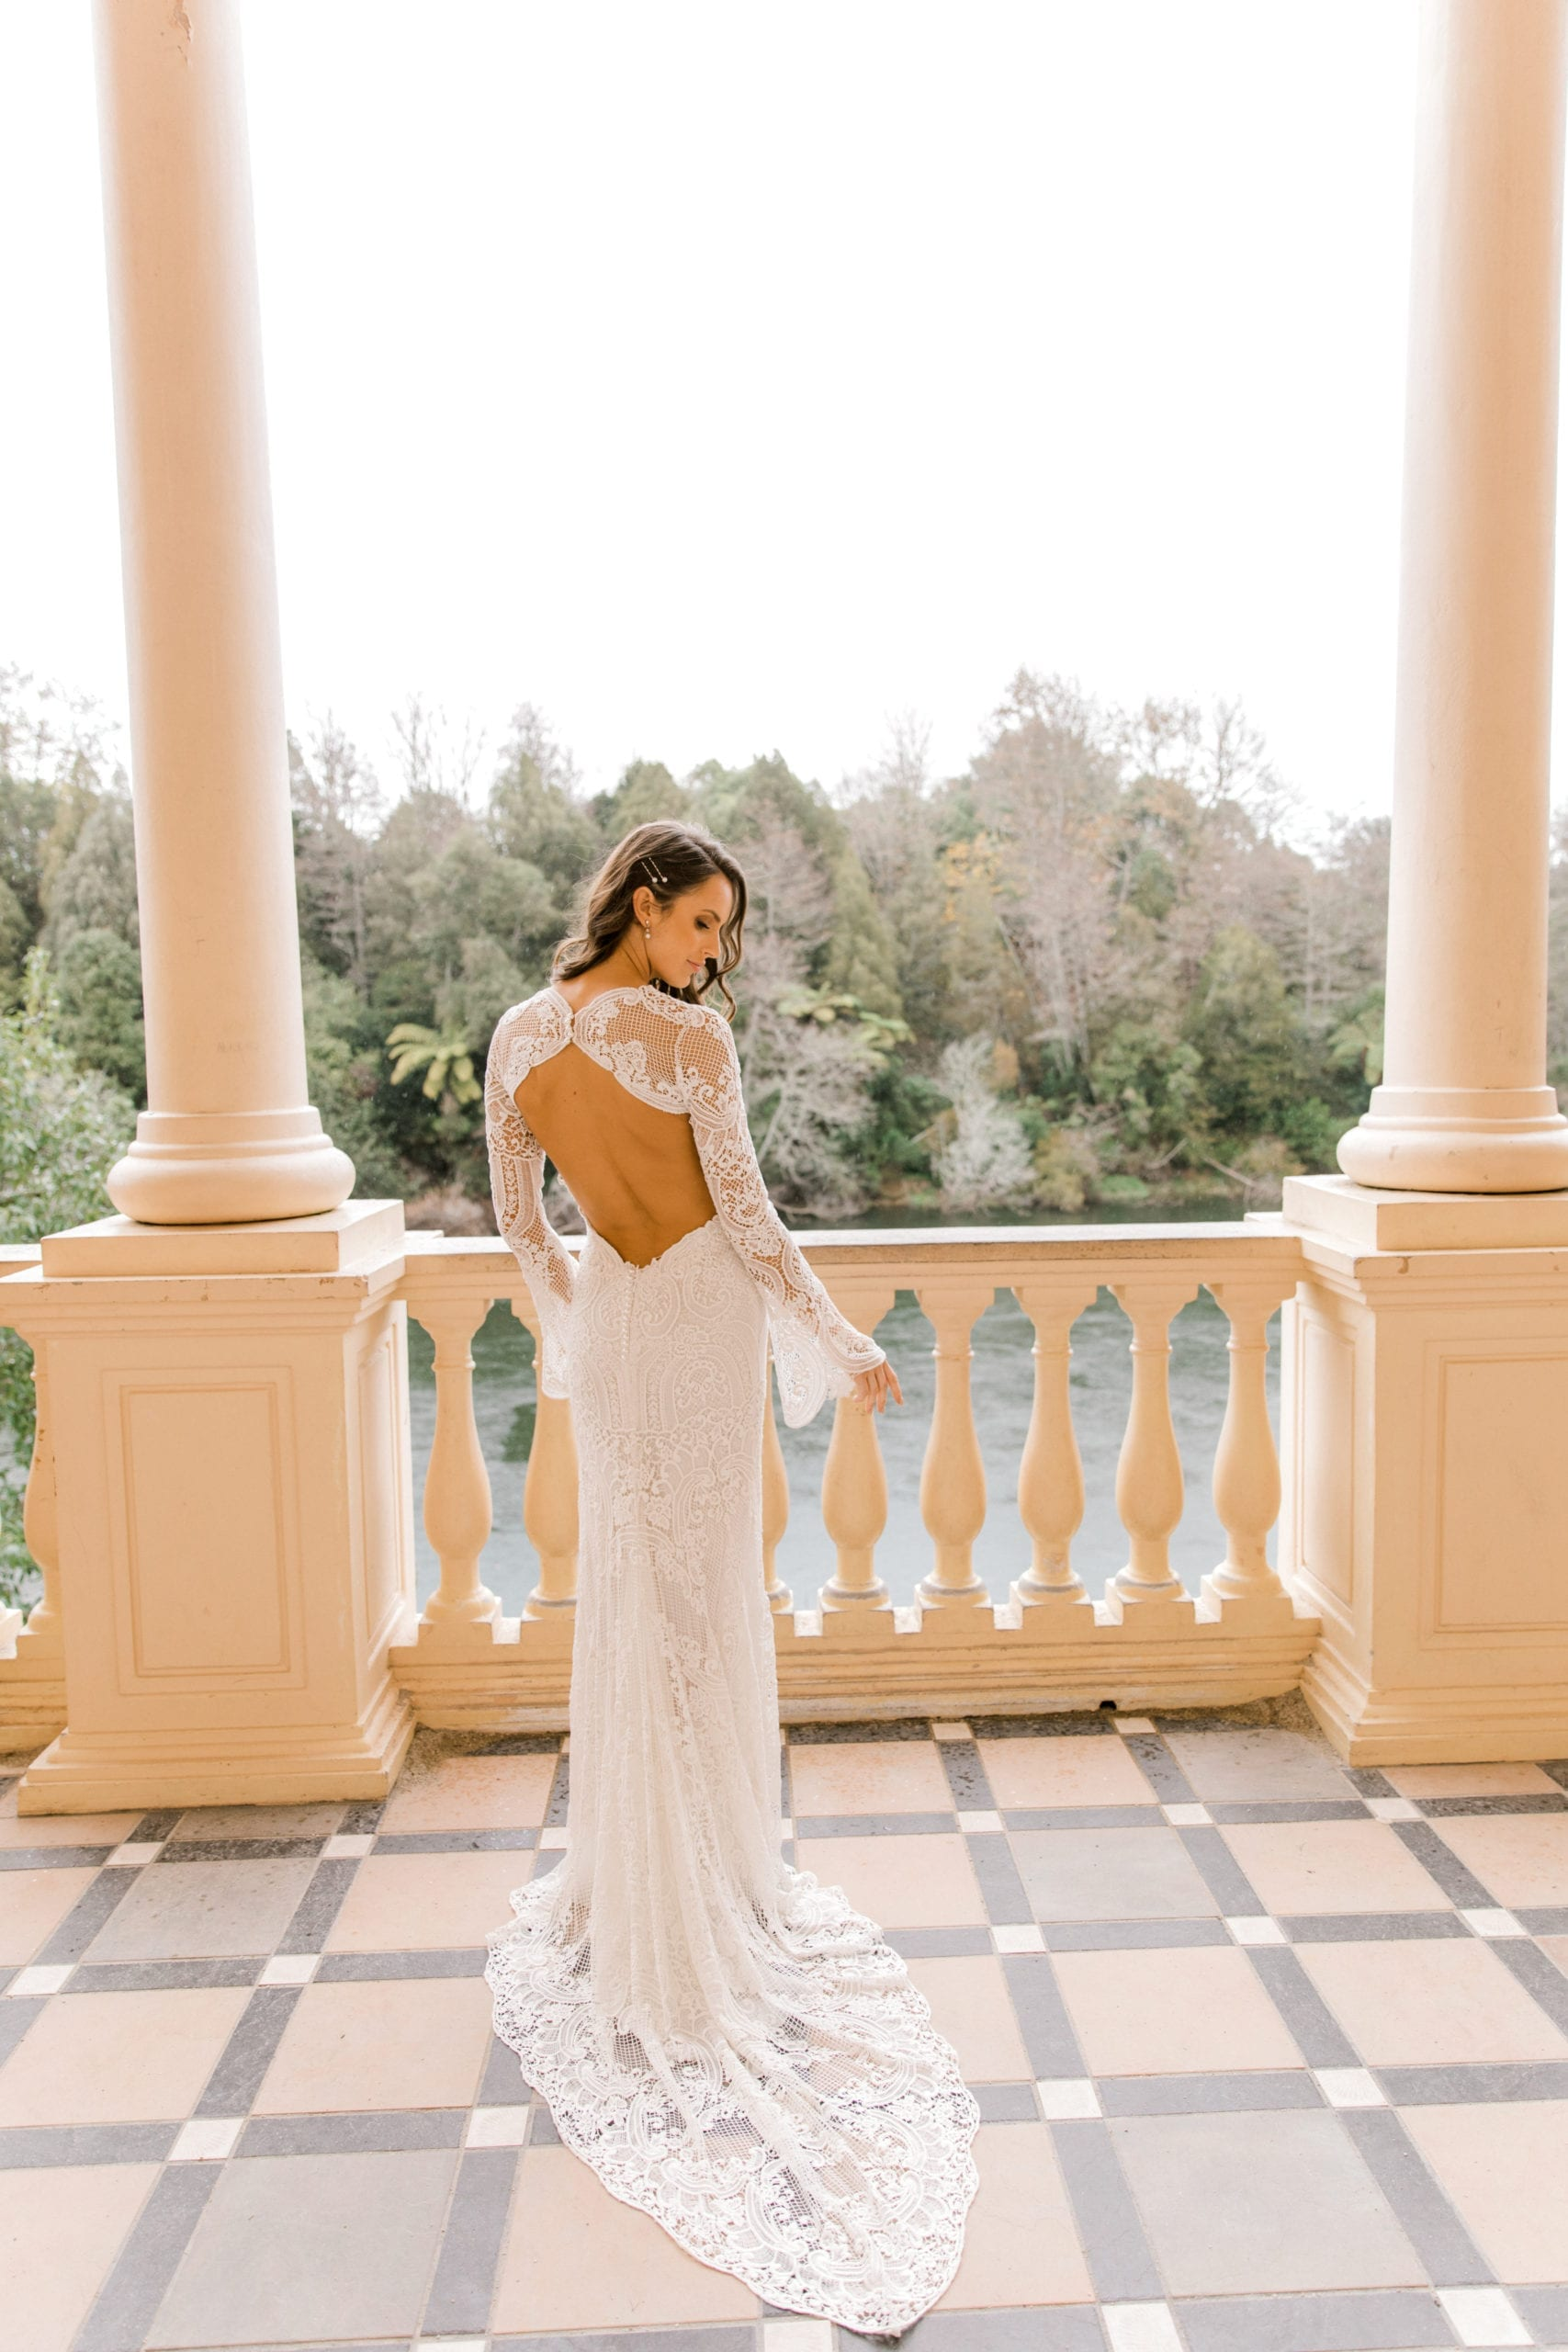 Model wearing Vinka Design Sabine Wedding Dress, a French Crochet Lace Wedding Gown on an open balcony with columns